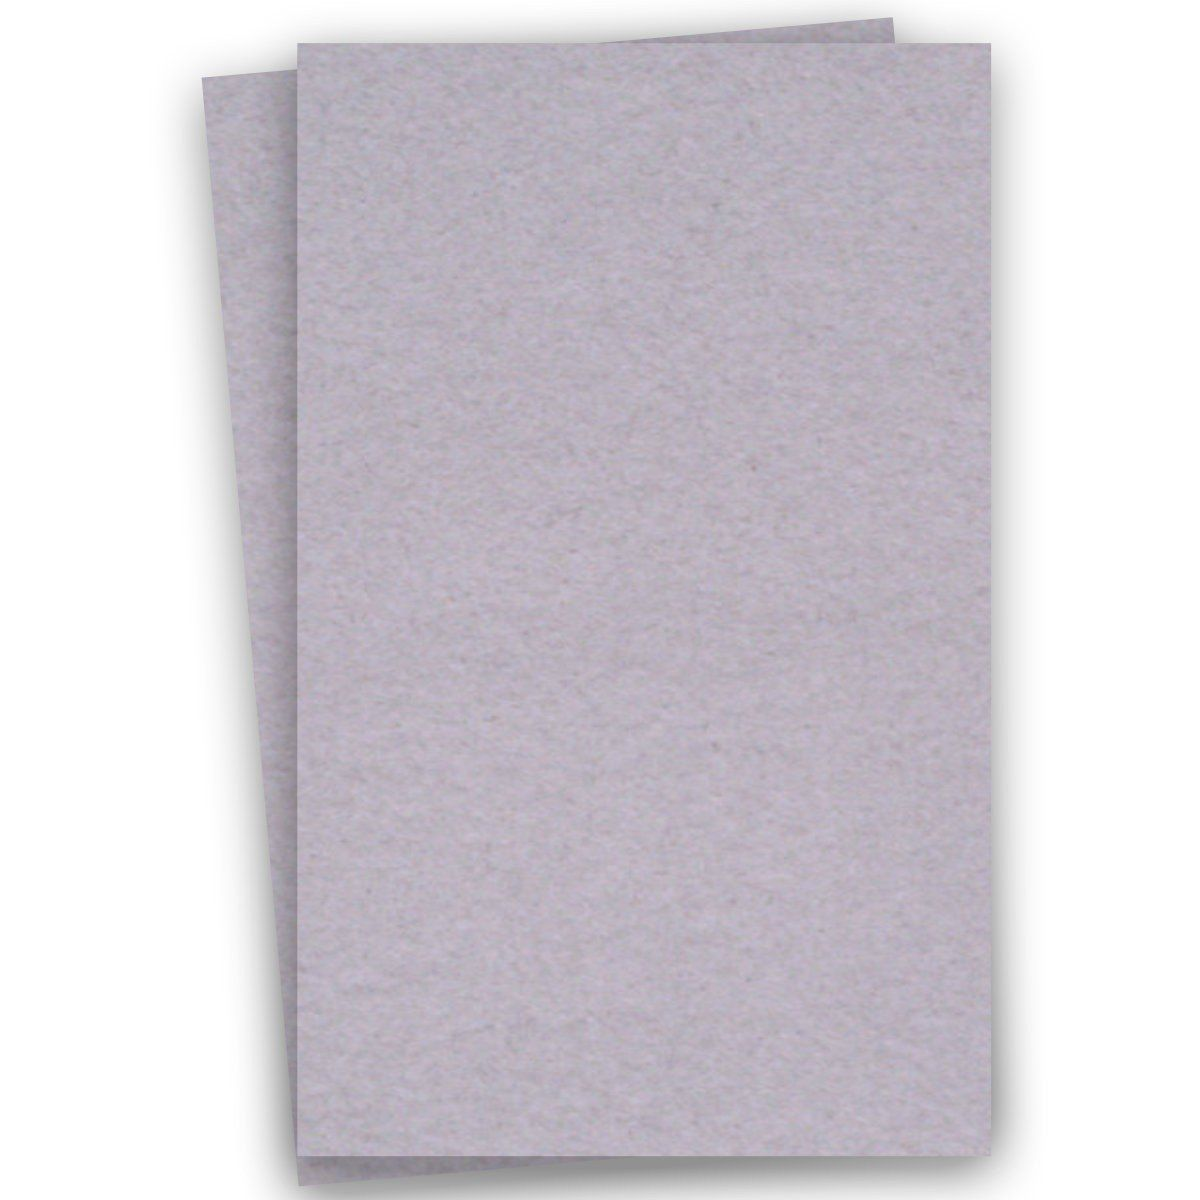 Remake Grey Smoke 11x17 Card Stock Paper 92lb Cover 250gsm 100 Pk In 2020 Cardstock Paper Luxury Paper Paper